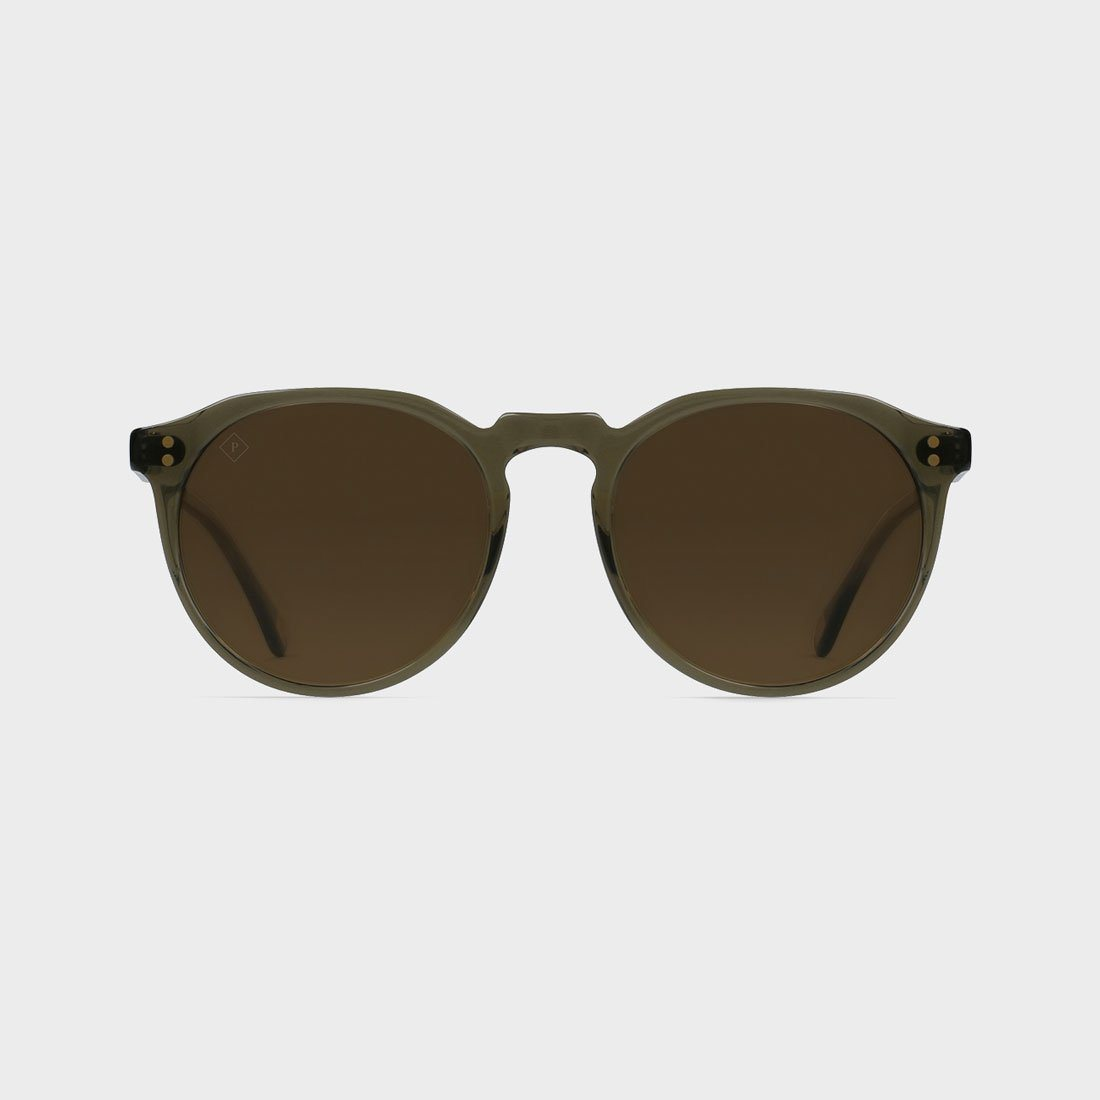 Raen x Topo Designs Collab Remmy Sunglasses Crystal Brown/ Polarized